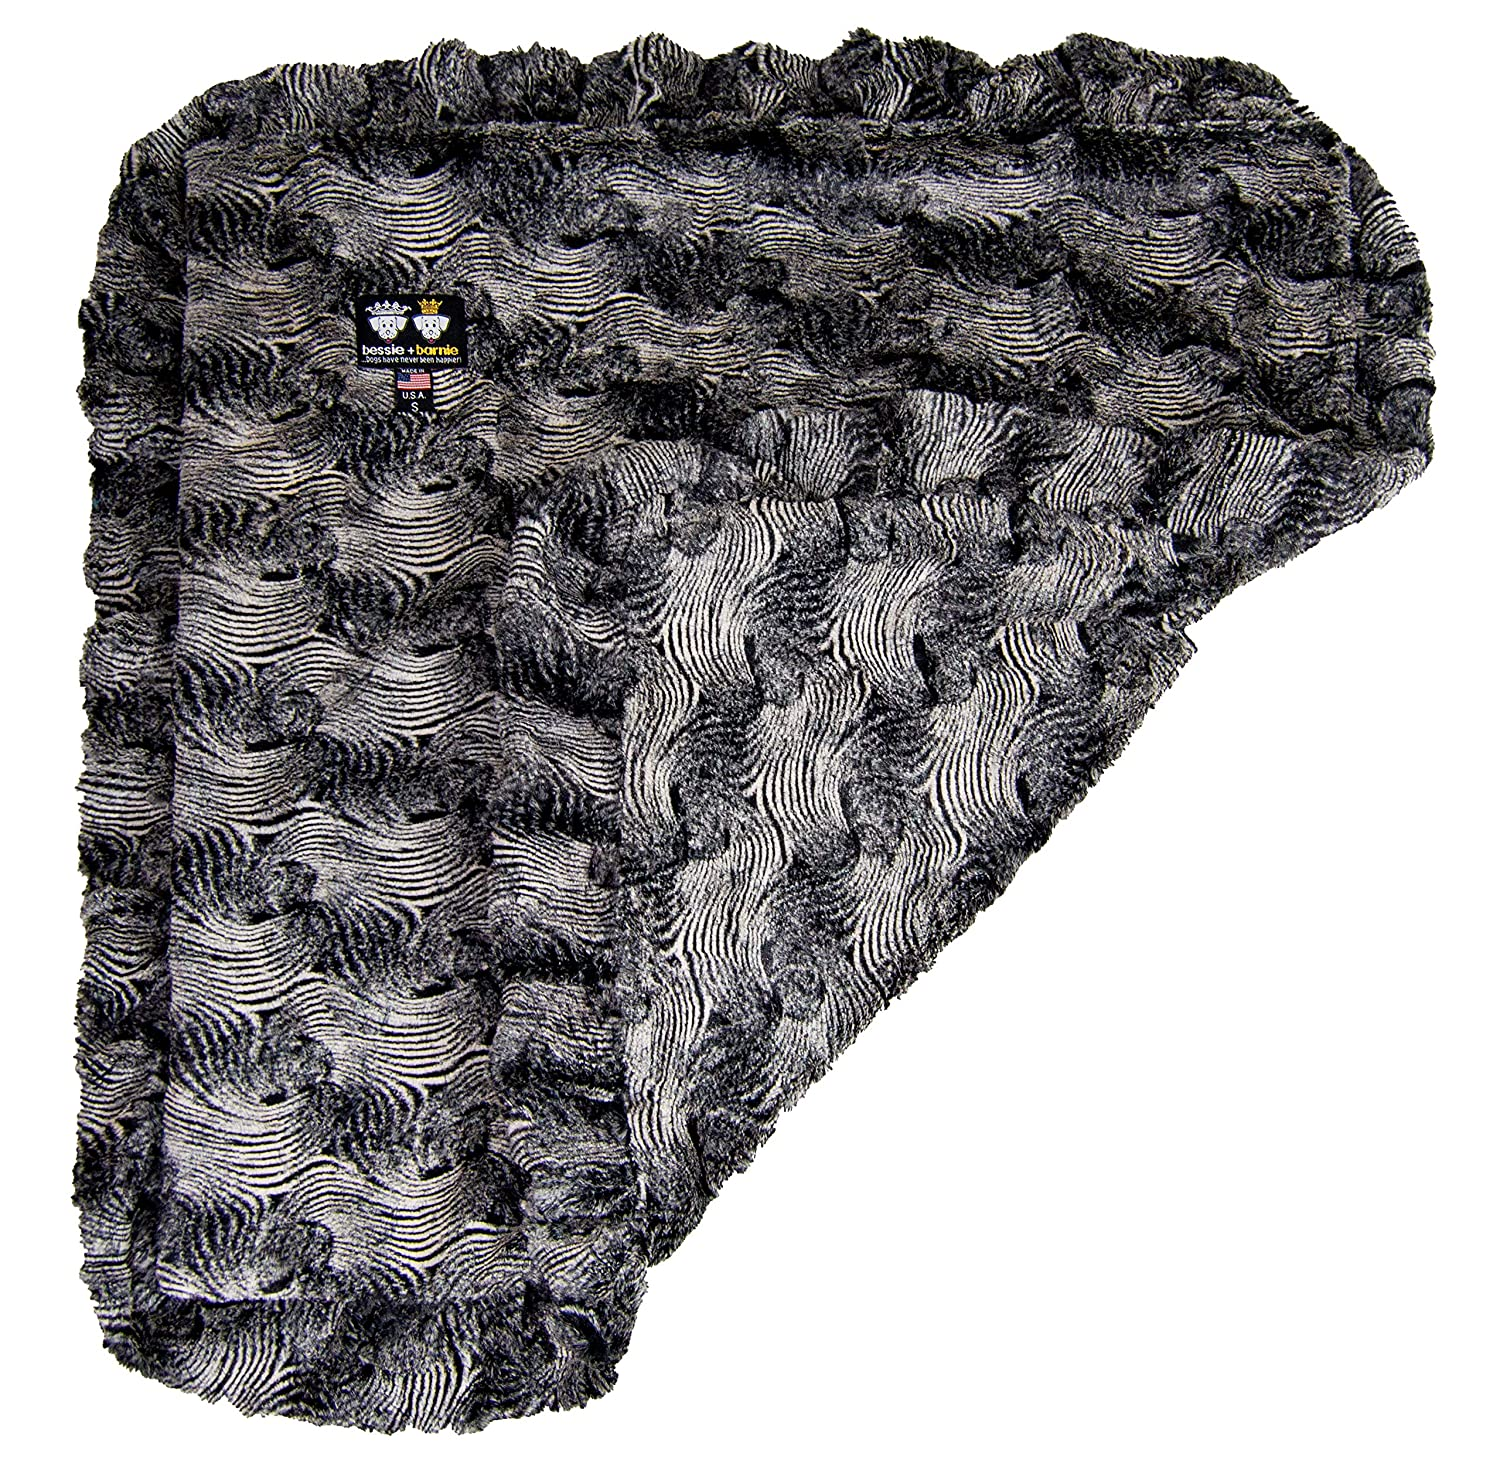 BESSIE AND BARNIE Arctic Seal (Ruffles) Luxury Ultra Plush Faux Fur Pet, Dog, Cat, Puppy Super Soft Reversible Blanket (Multiple Sizes) DEUKQ BLNKT-AS-MD